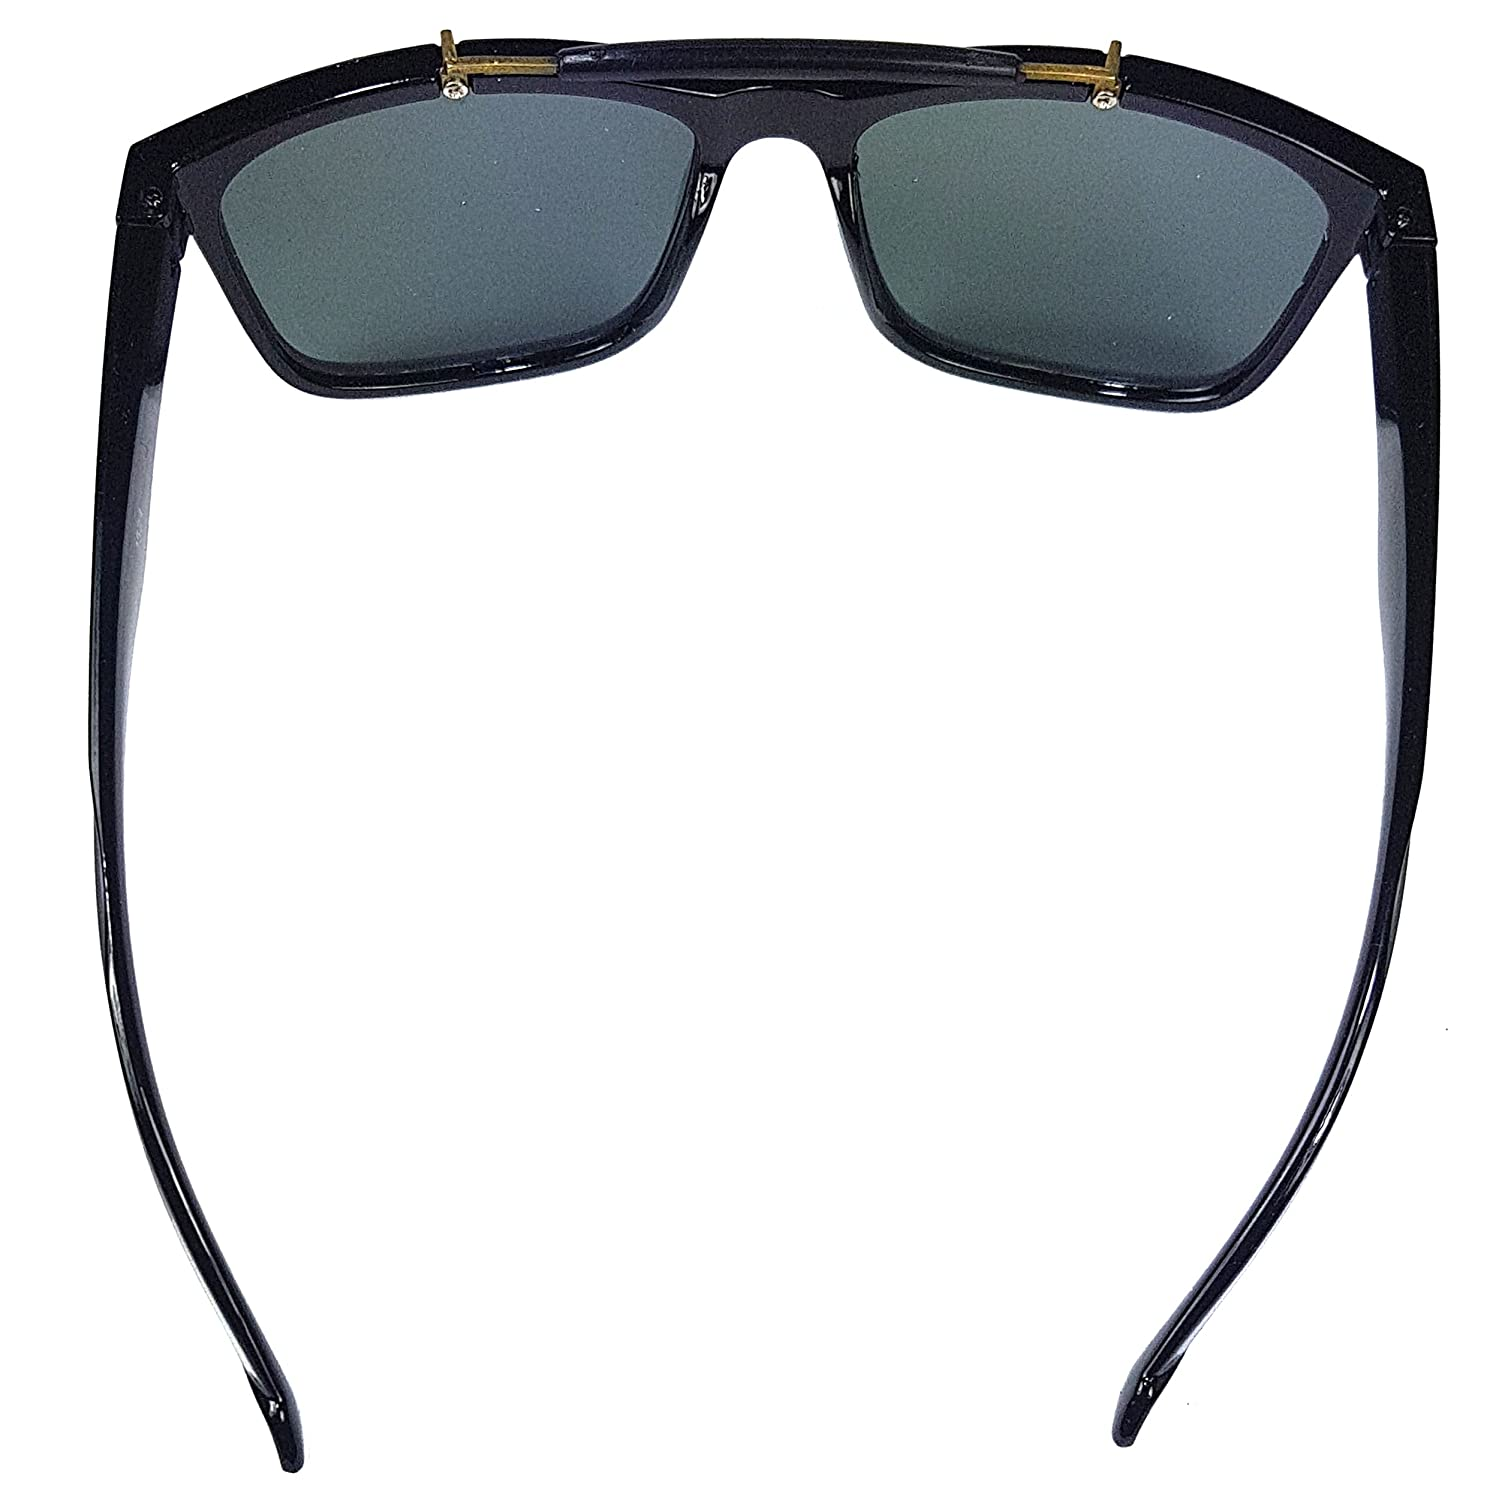 Polo House USA MenS Sunglasses Black